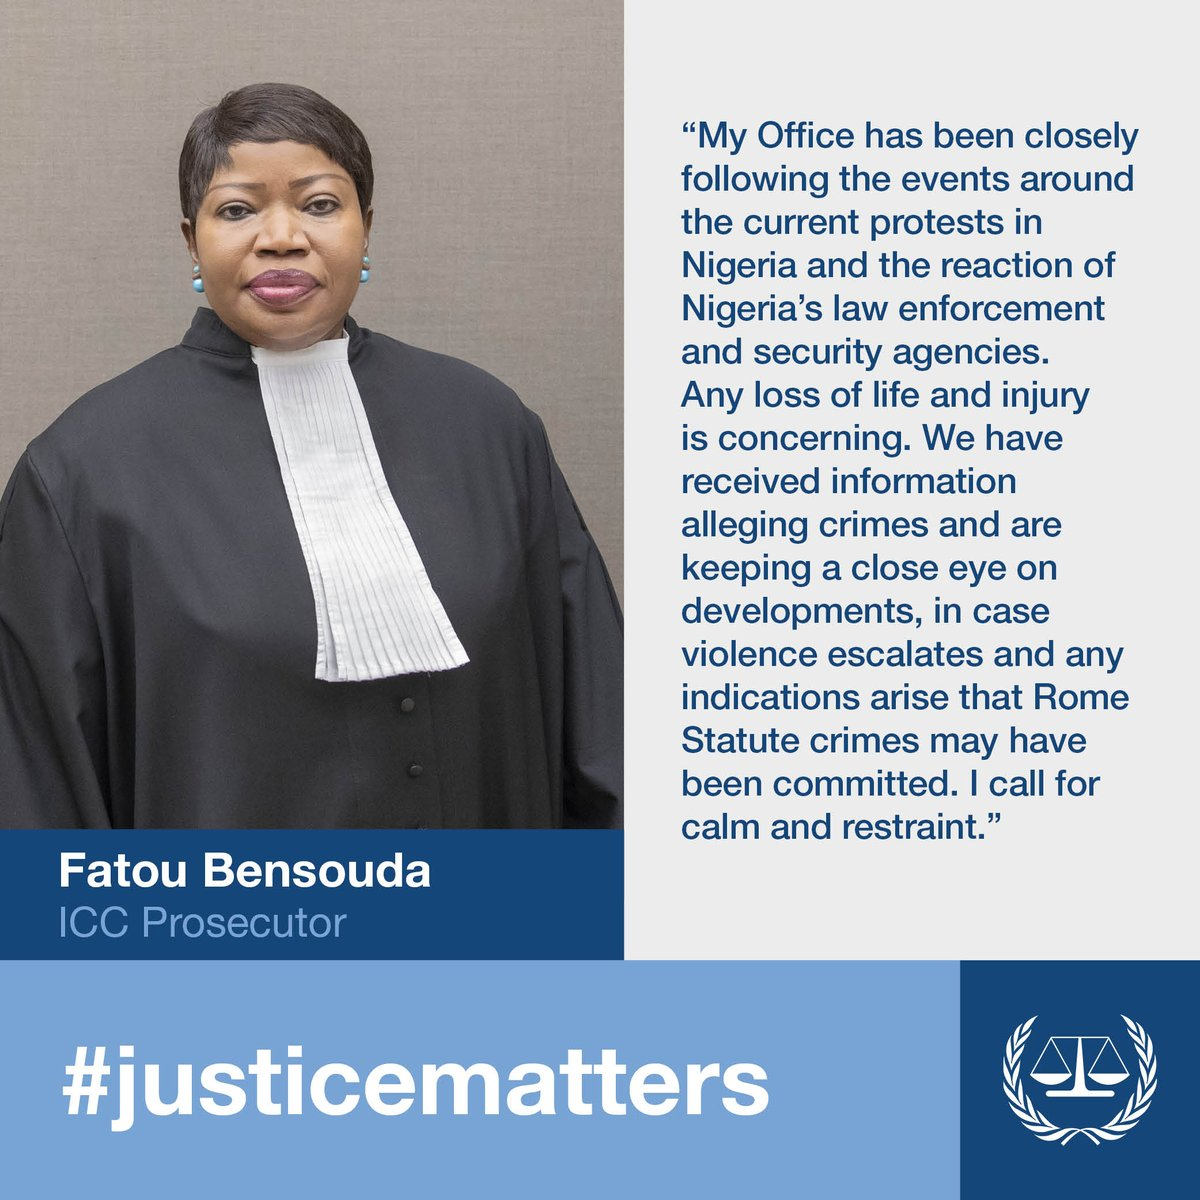 """#ICC Prosecutor #FatouBensouda on the recent violence in #Nigeria: """"I call for calm and restraint."""" ⬇"""